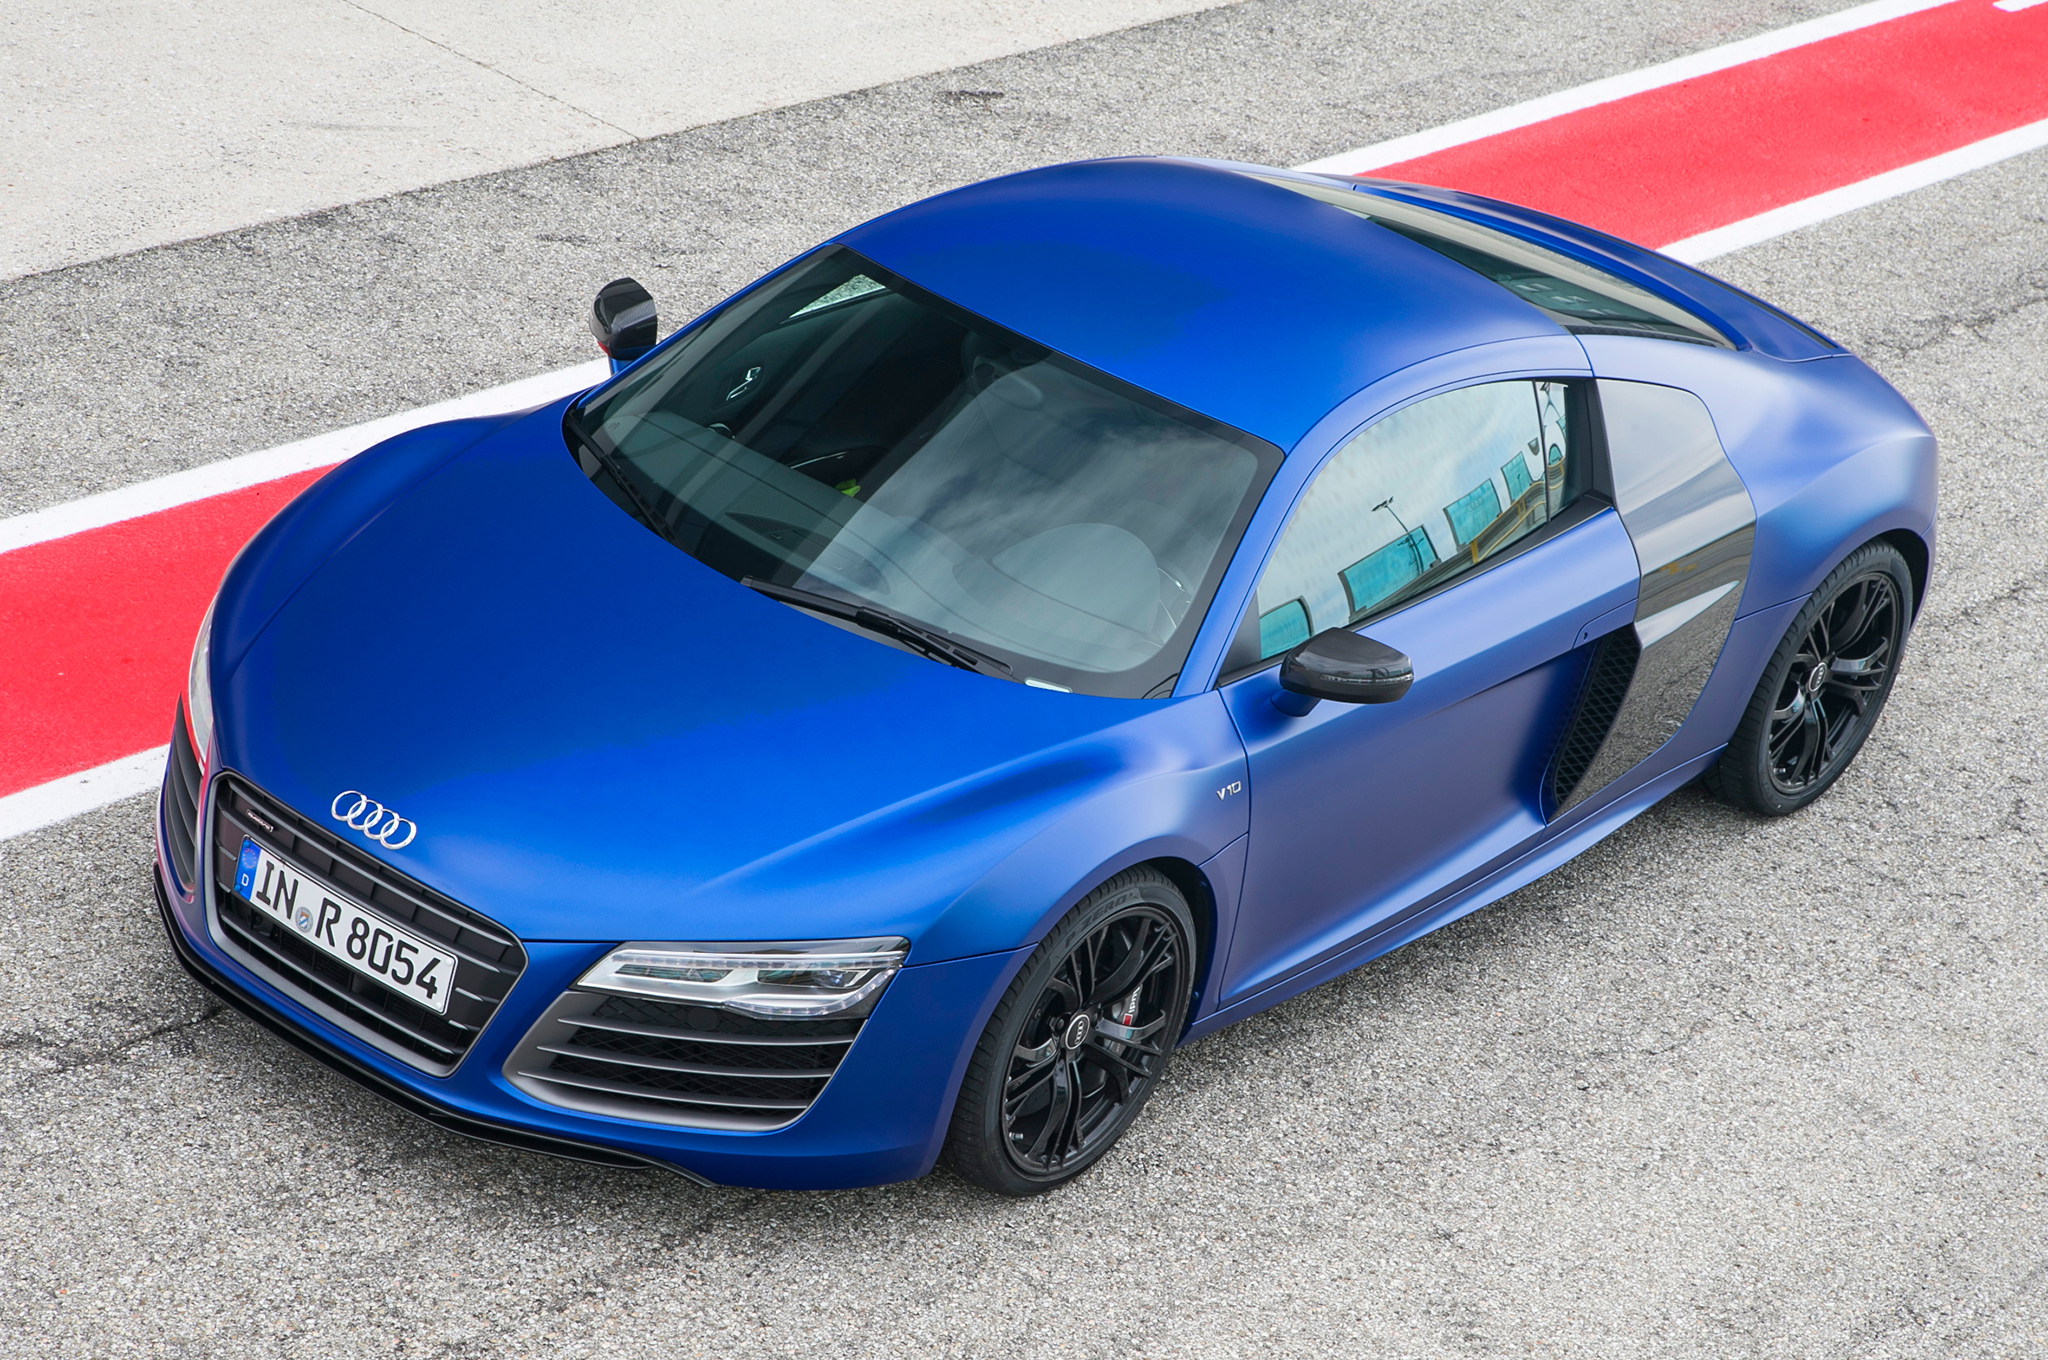 We Hear: Next-Gen Audi R8 to Get Downsized Turbo Engines